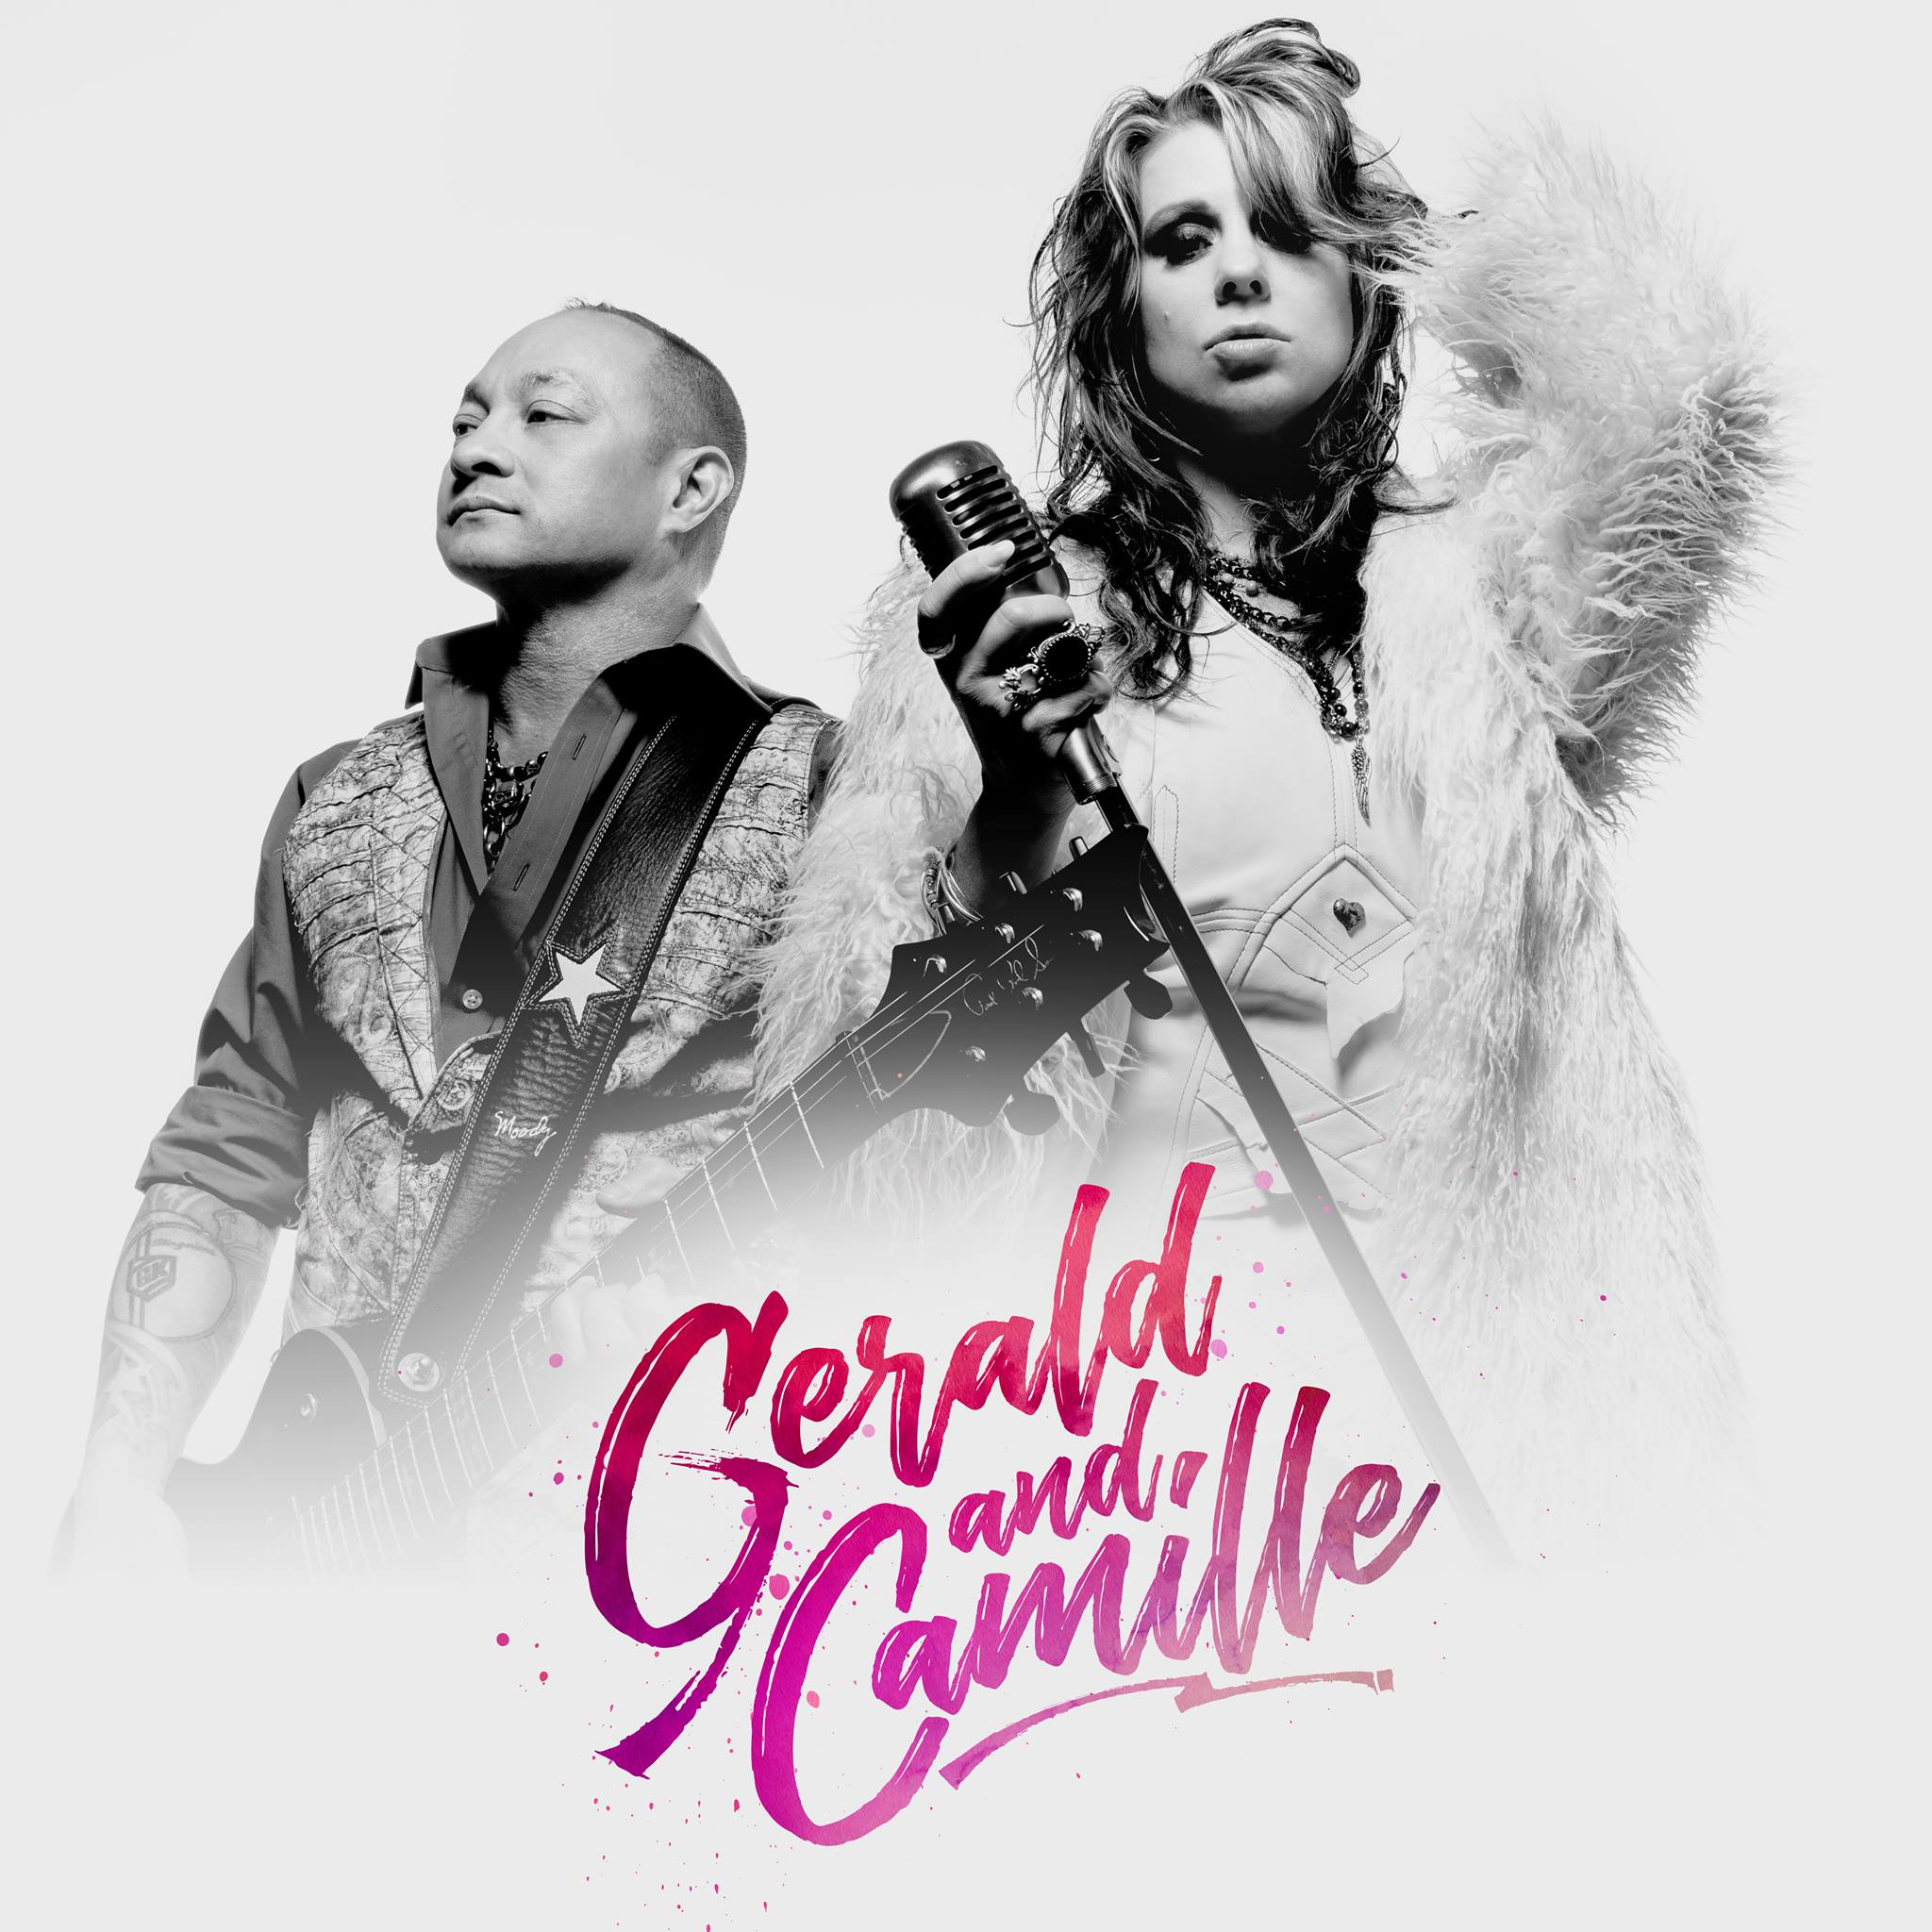 gerald and camille